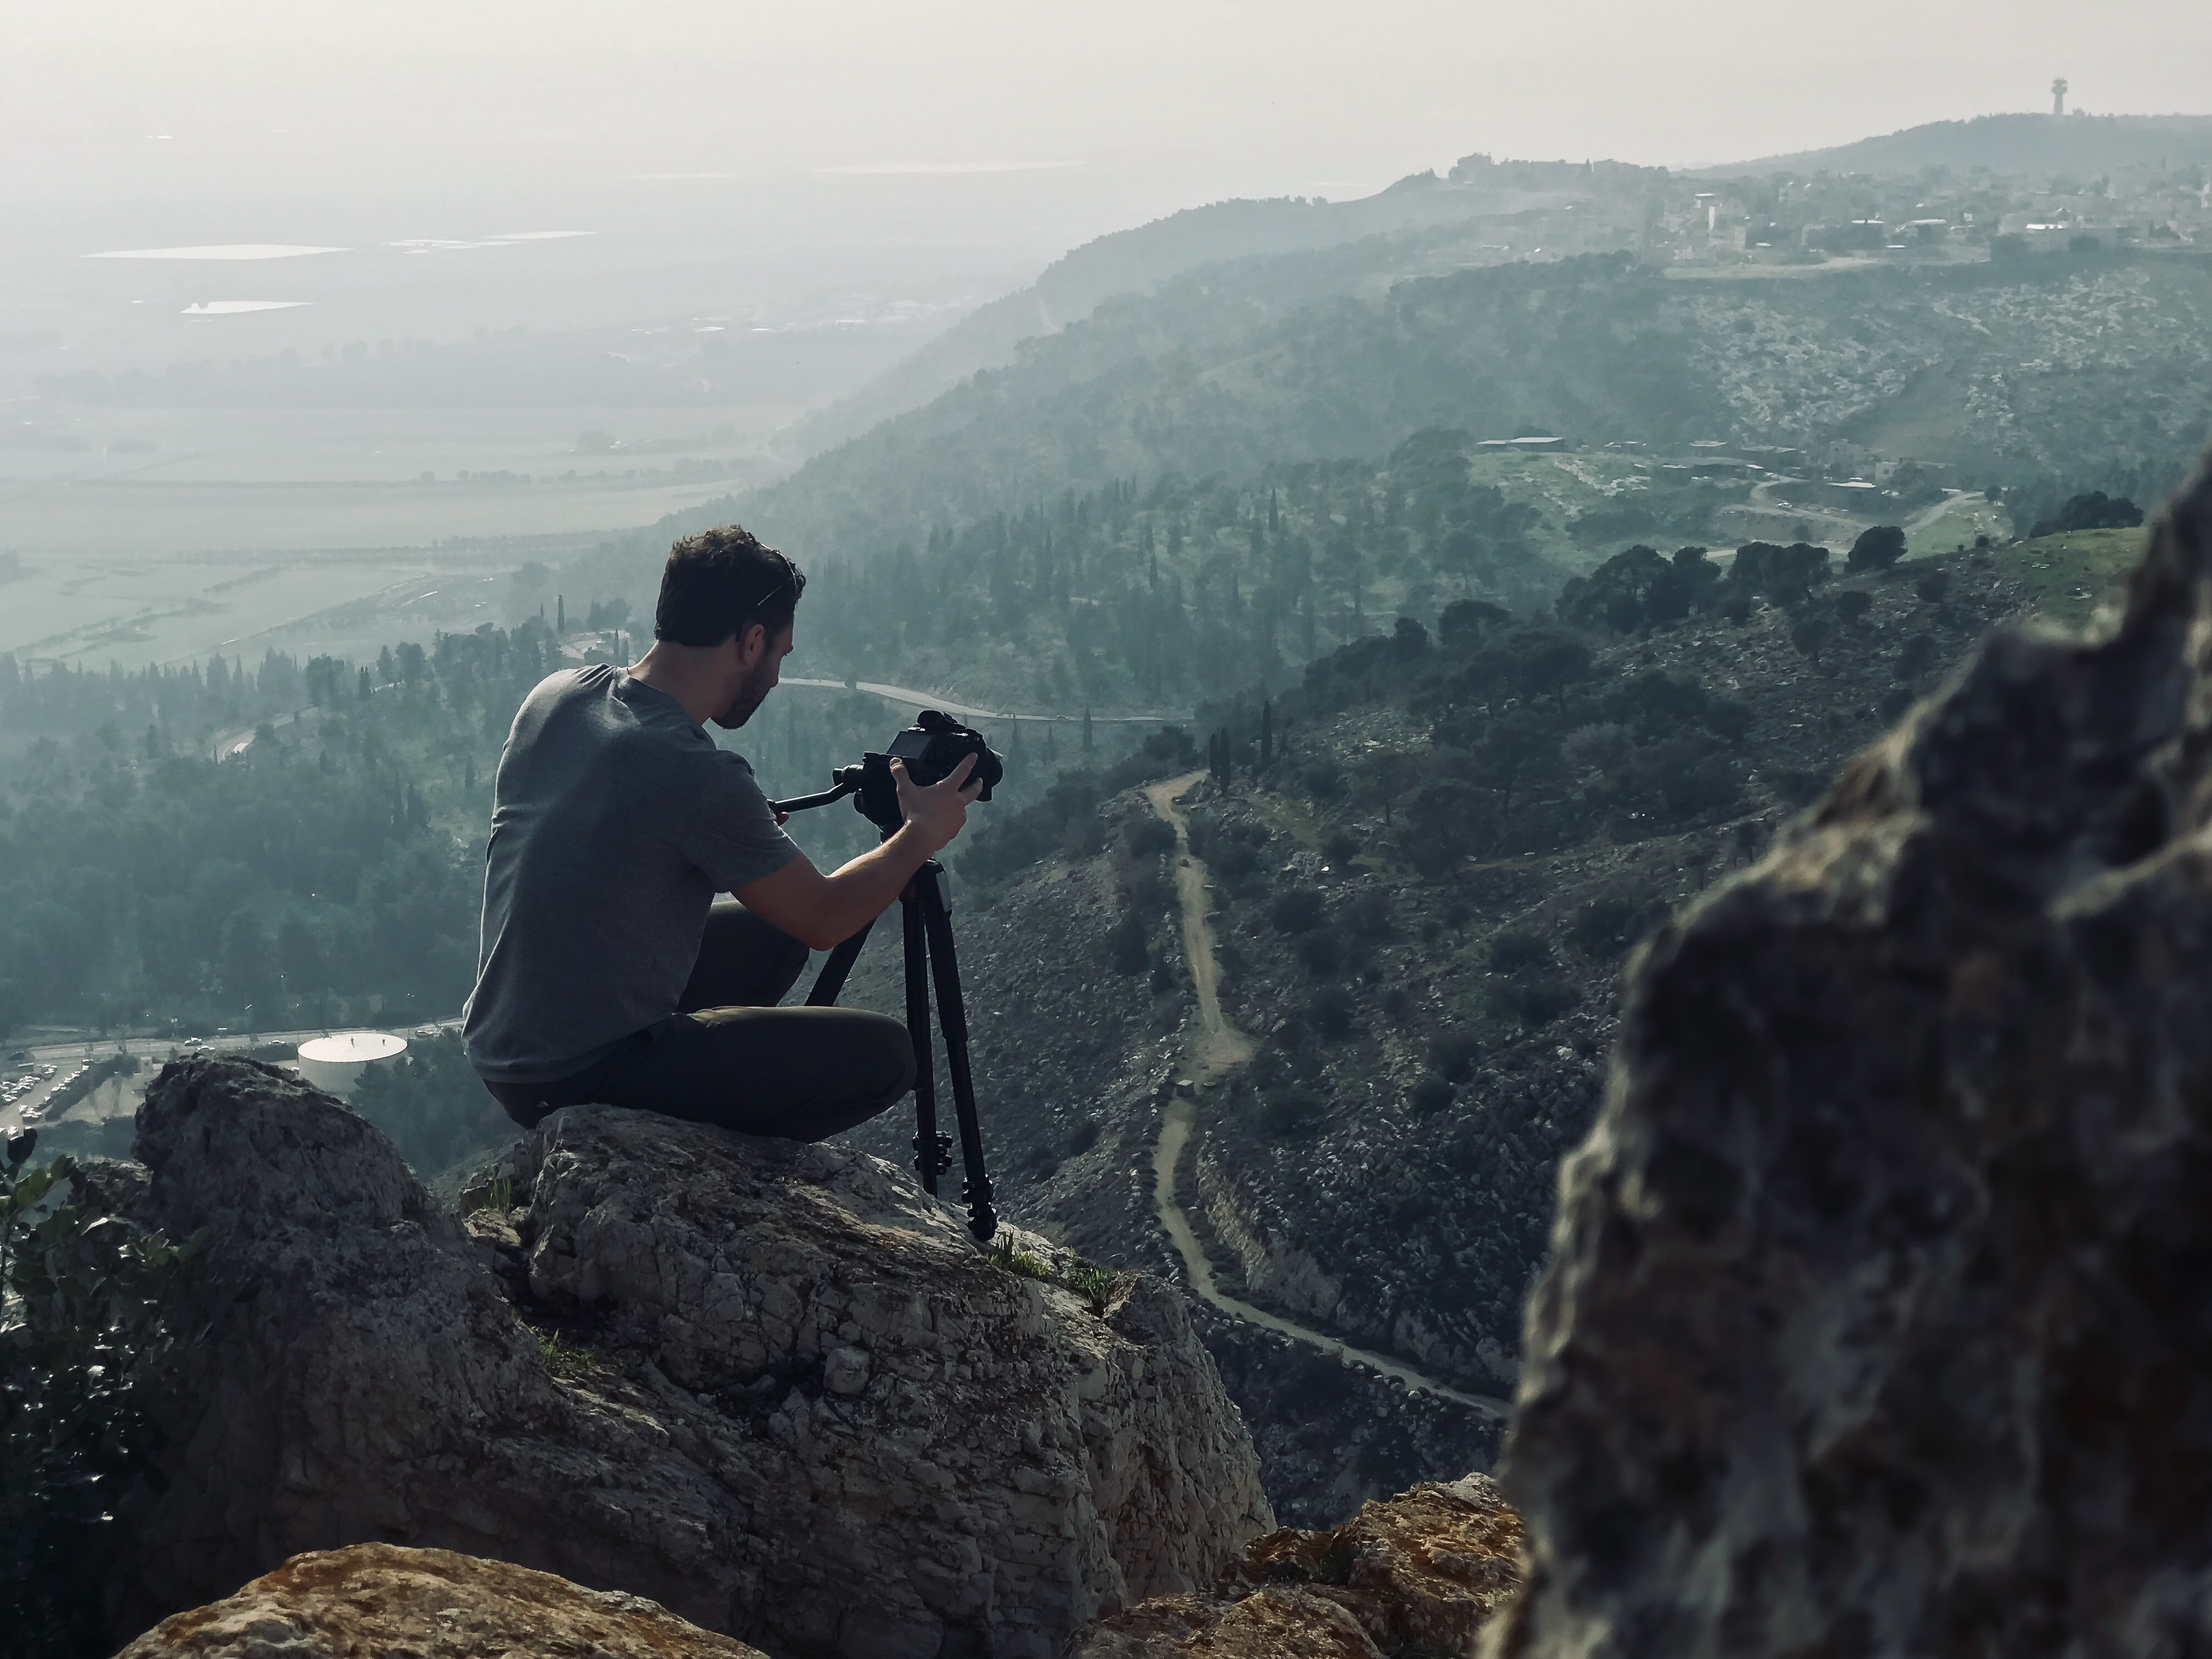 Photographer setting up for a shot over the mountains